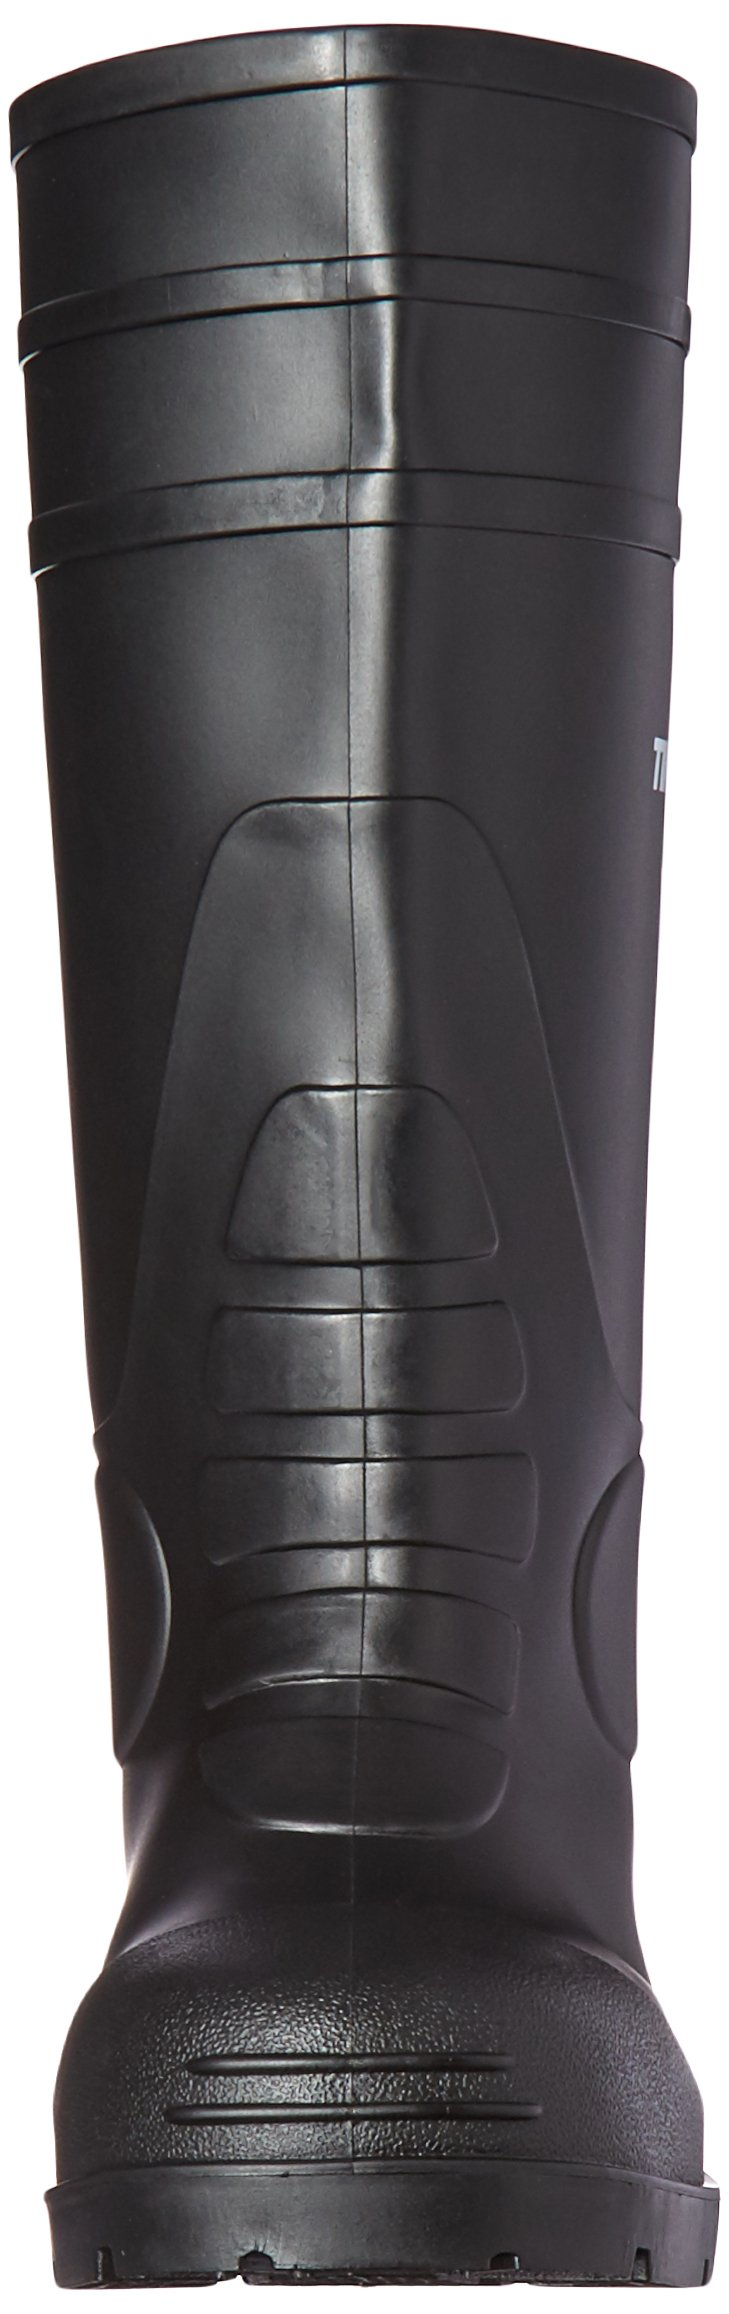 TINGLEY 31151 Economy SZ12 Kneed Boot for Agriculture, 15-Inch, Black by TINGLEY (Image #4)